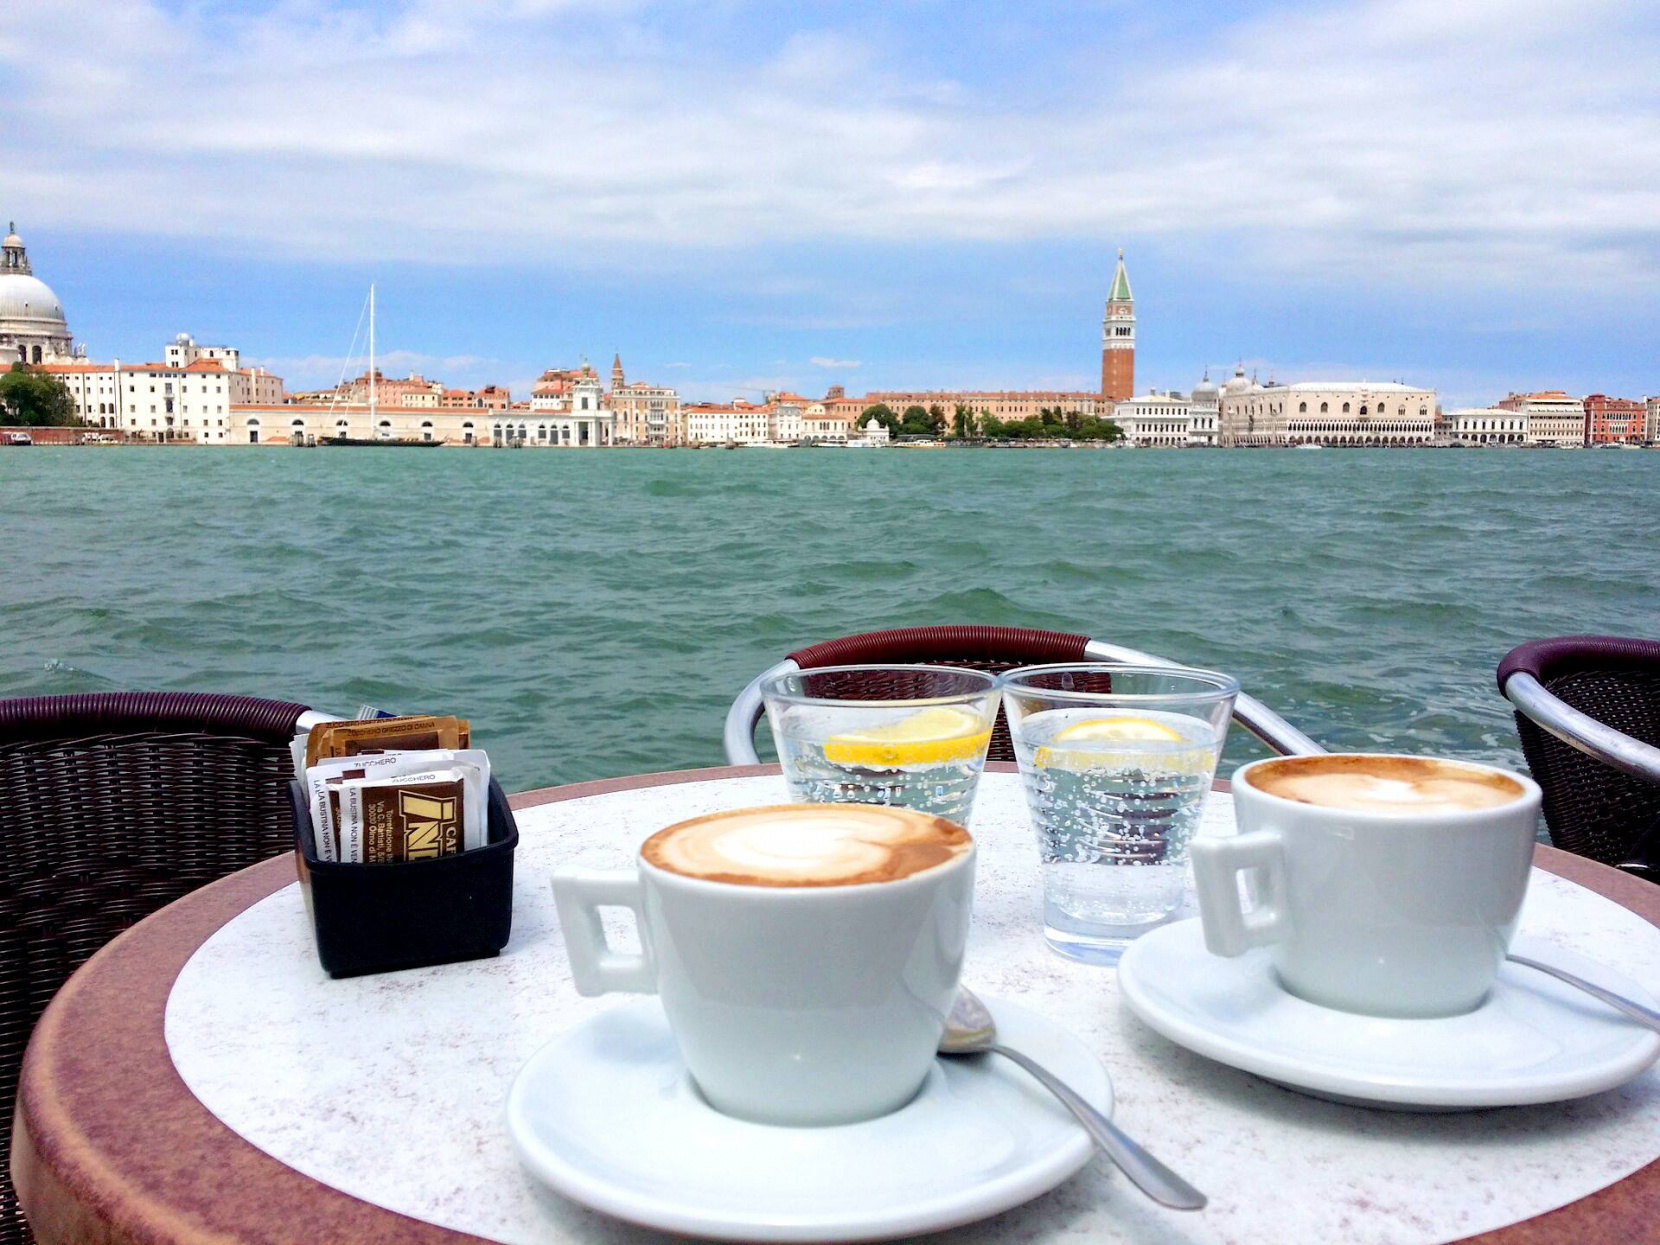 Espresso yourself: How to drink coffee like a local in Italy